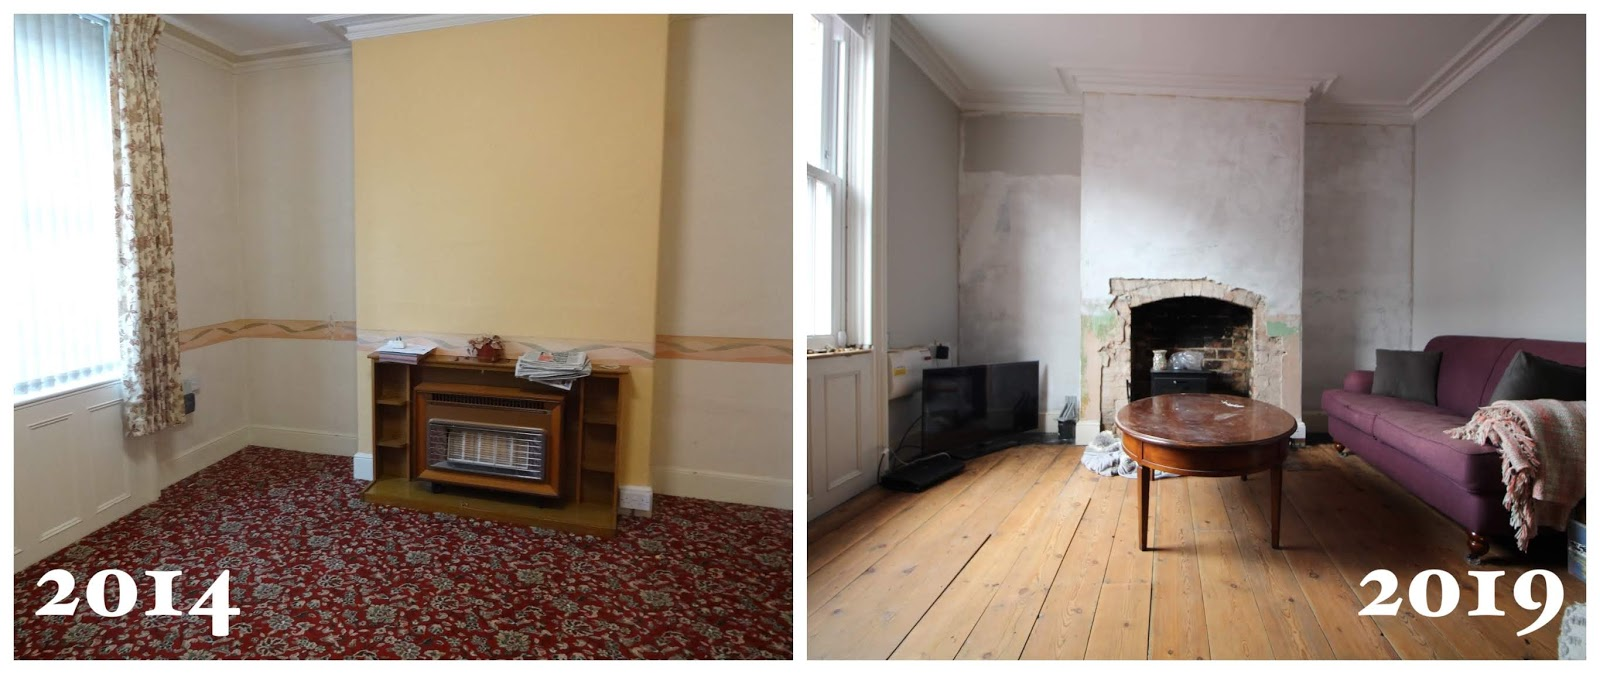 living room renovation before and after 5 years